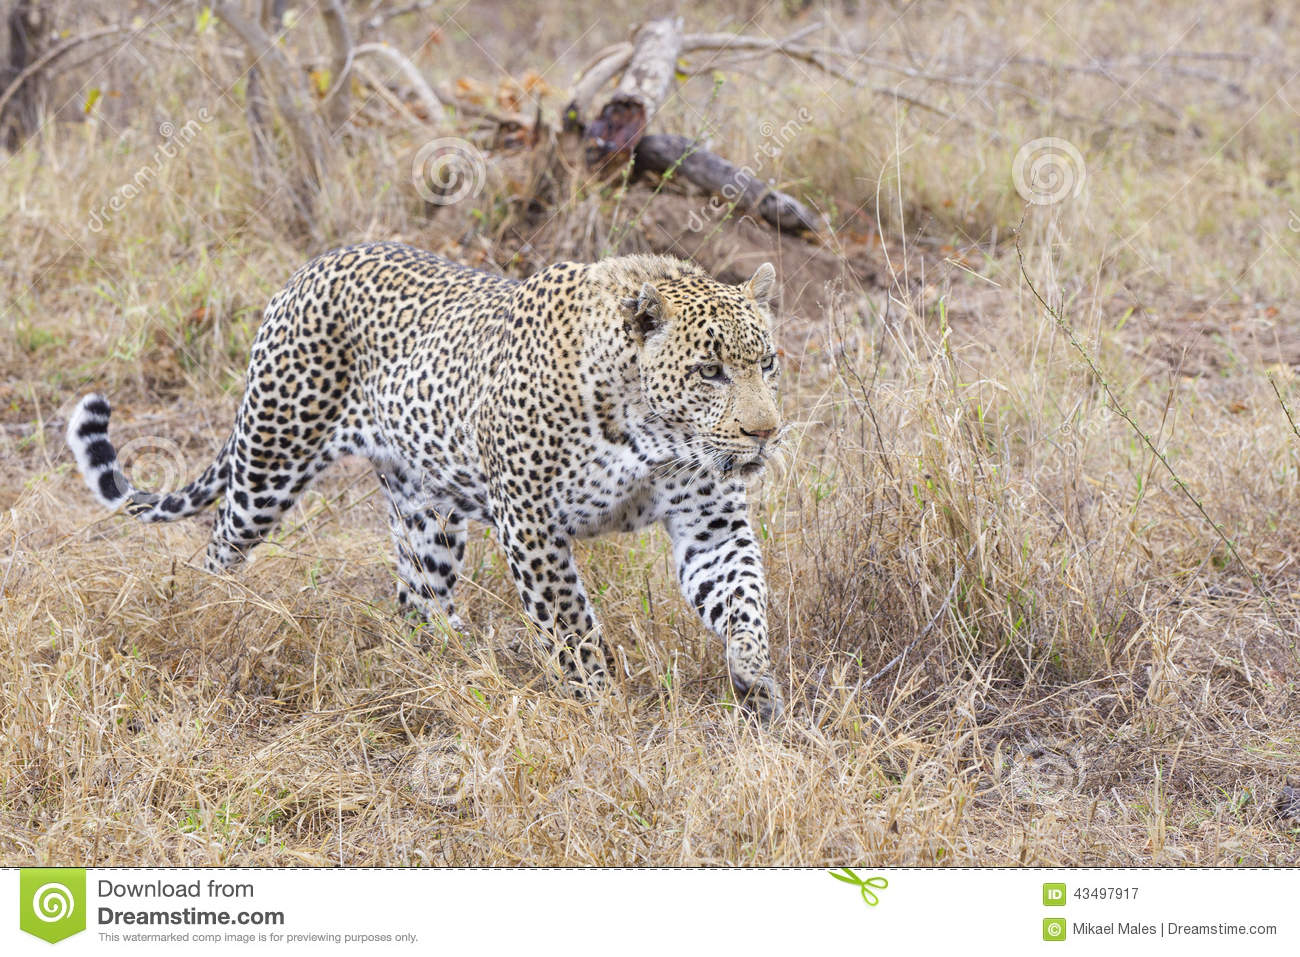 leopard on the hunt in south africa stock photo - image: 43497917